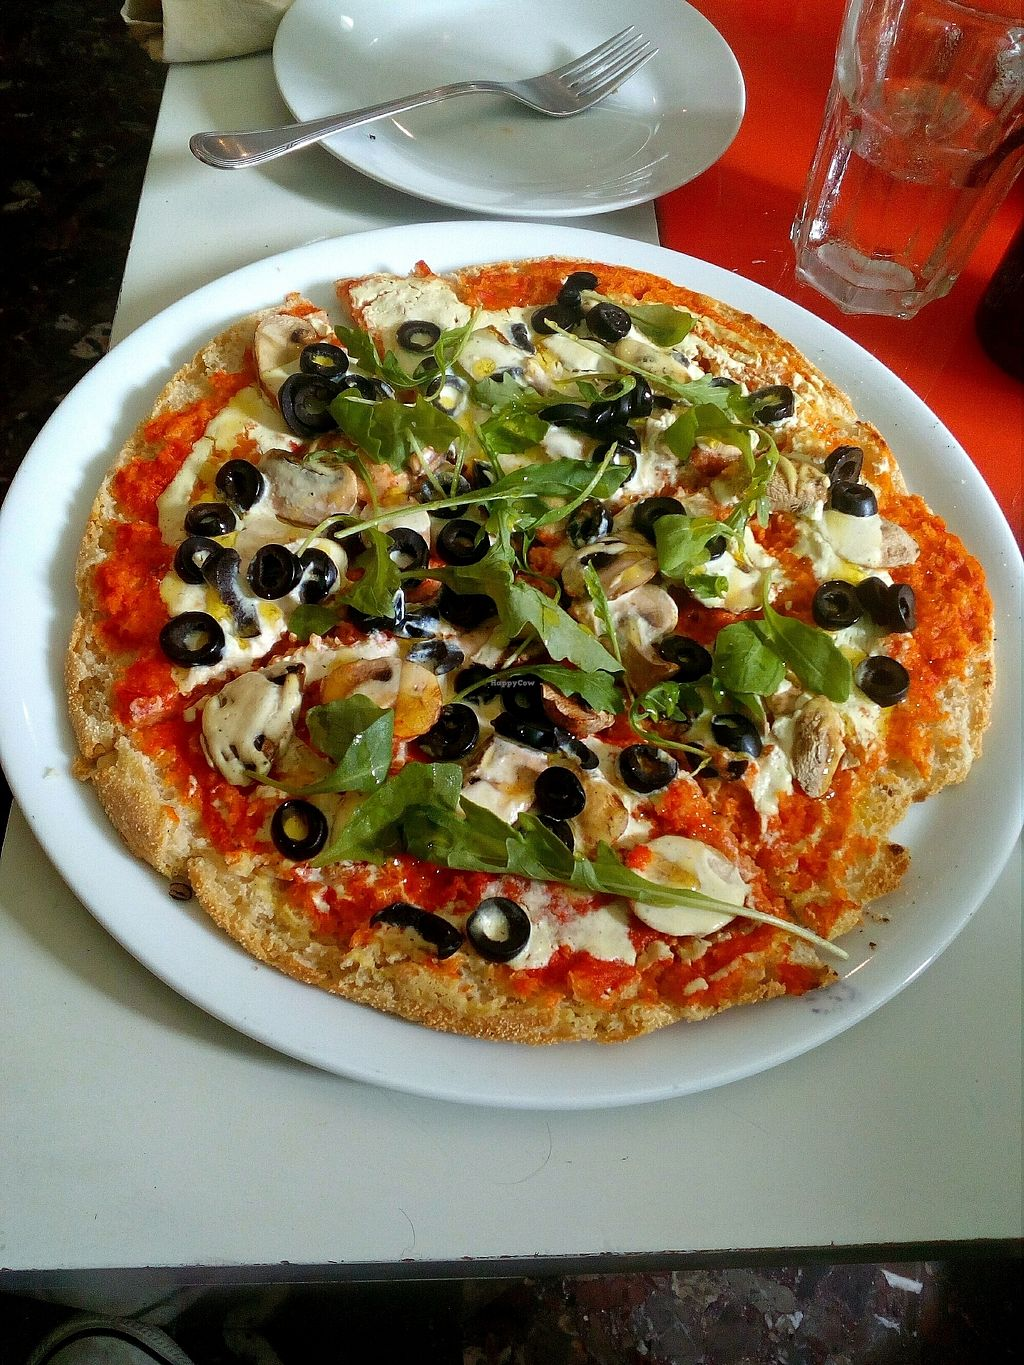 "Photo of CLOSED: Nehuen Tasca Vegana  by <a href=""/members/profile/wyrd"">wyrd</a> <br/>pizza with mushrooms and olives <br/> October 14, 2017  - <a href='/contact/abuse/image/66620/315153'>Report</a>"